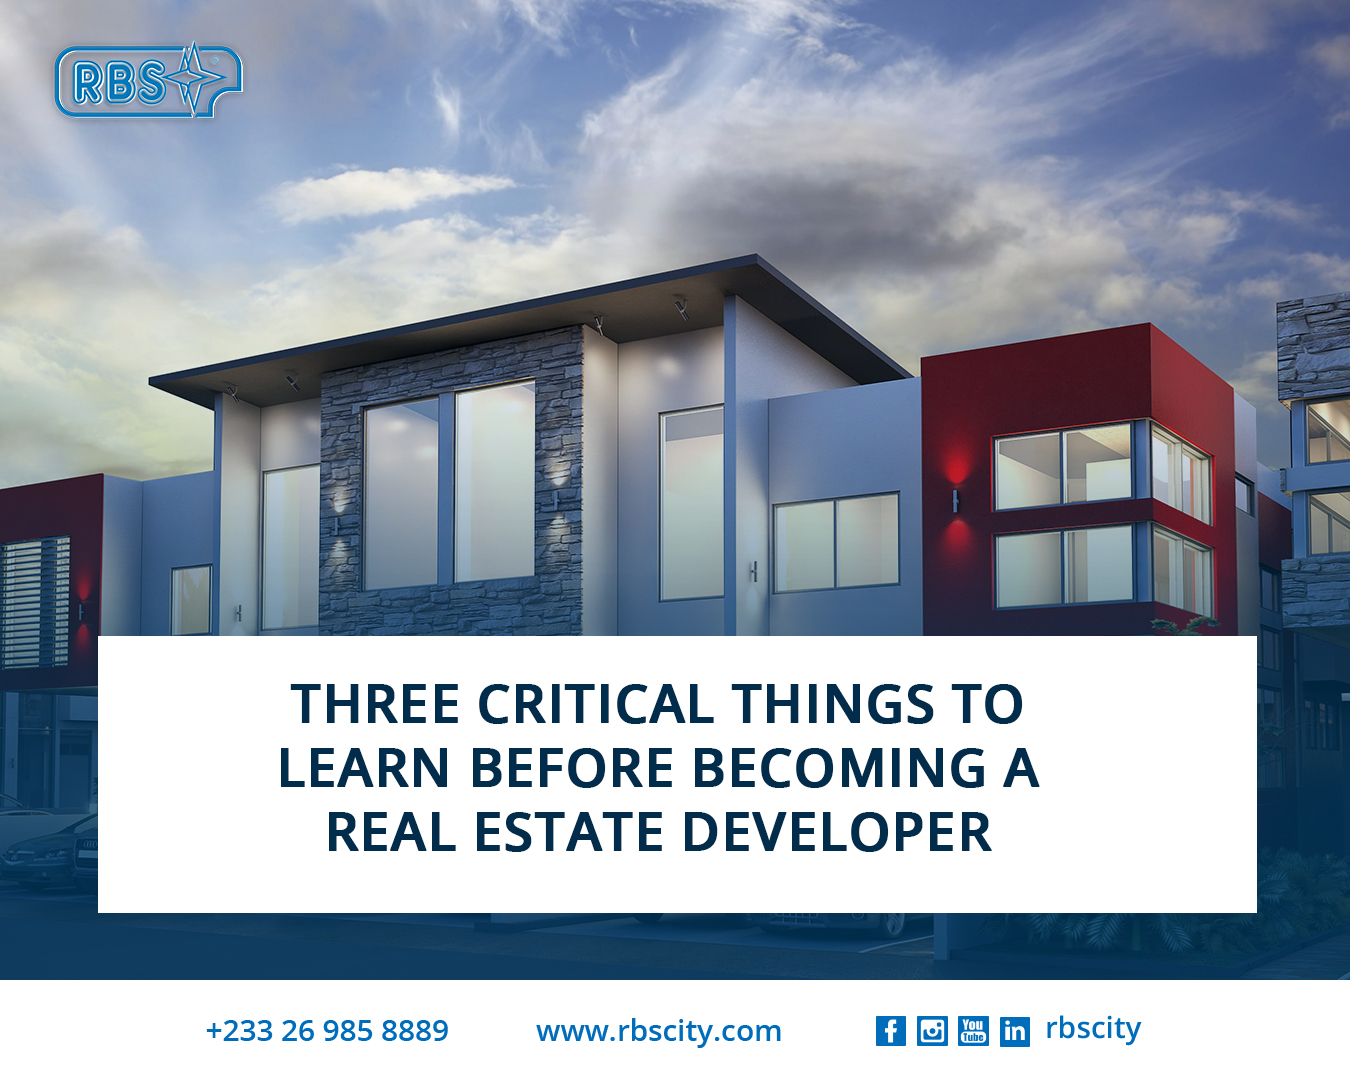 Three Critical Things To Learn Before Becoming A Real Estate Developer